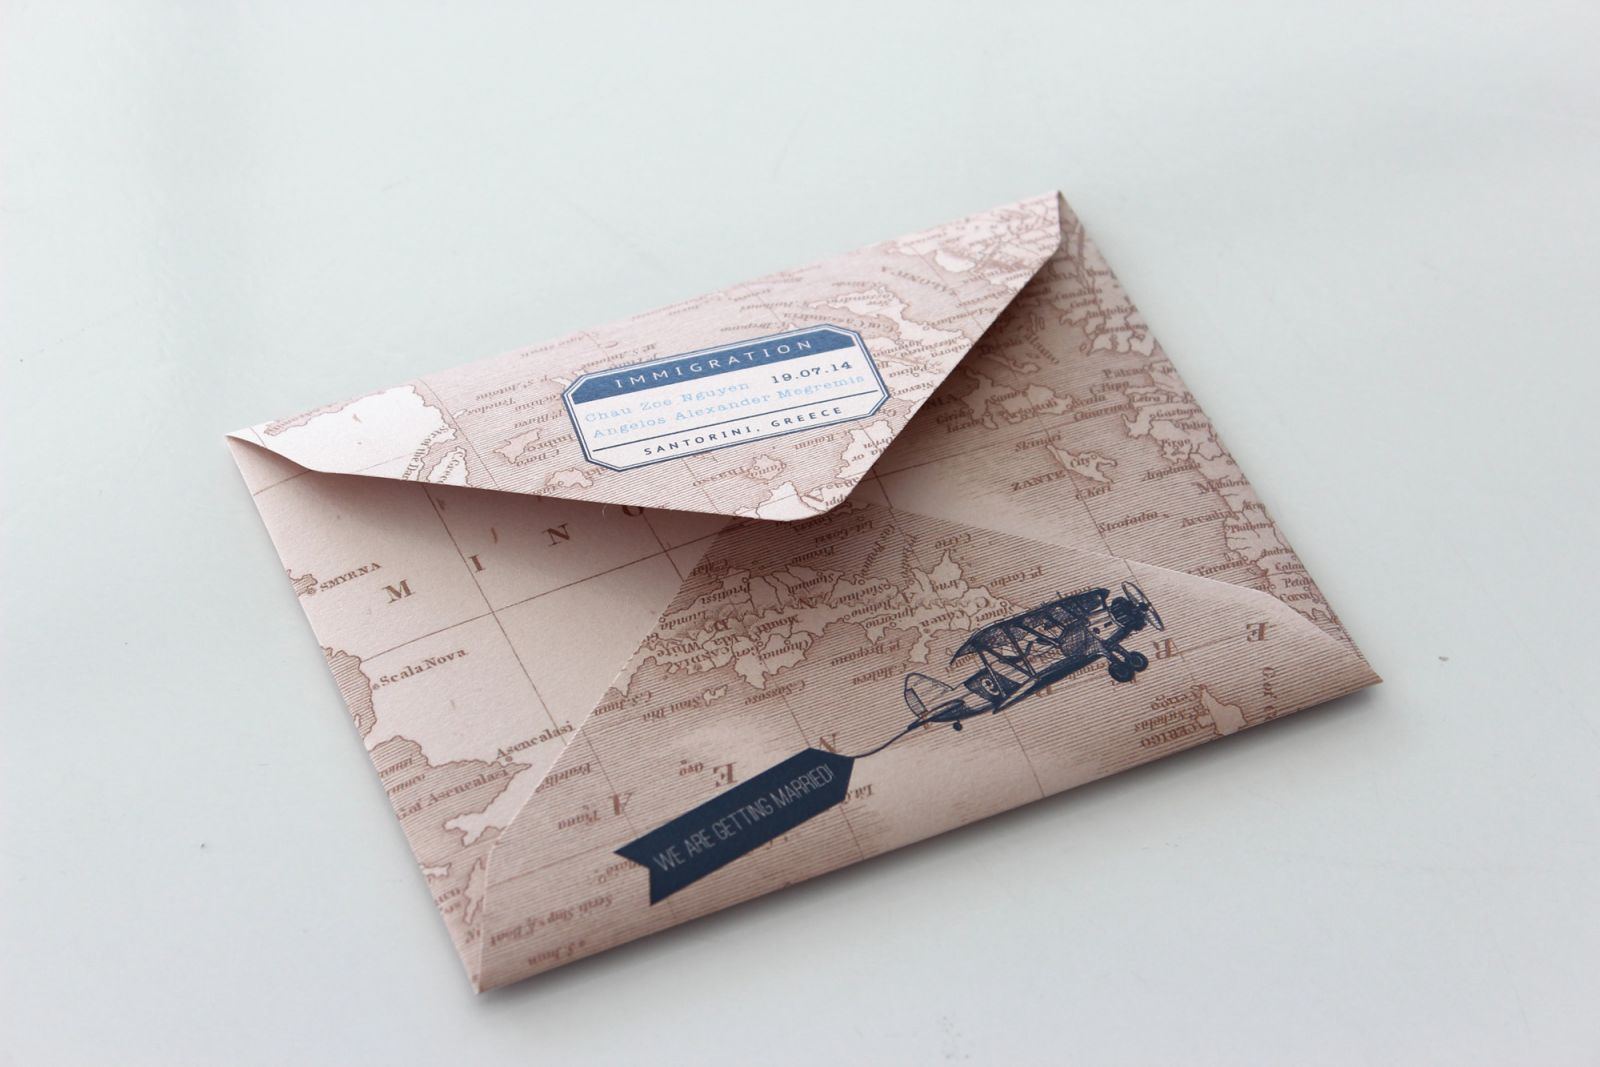 My passport invitation - designed and printed by Secret Diary Wedding Invitation - South Africa